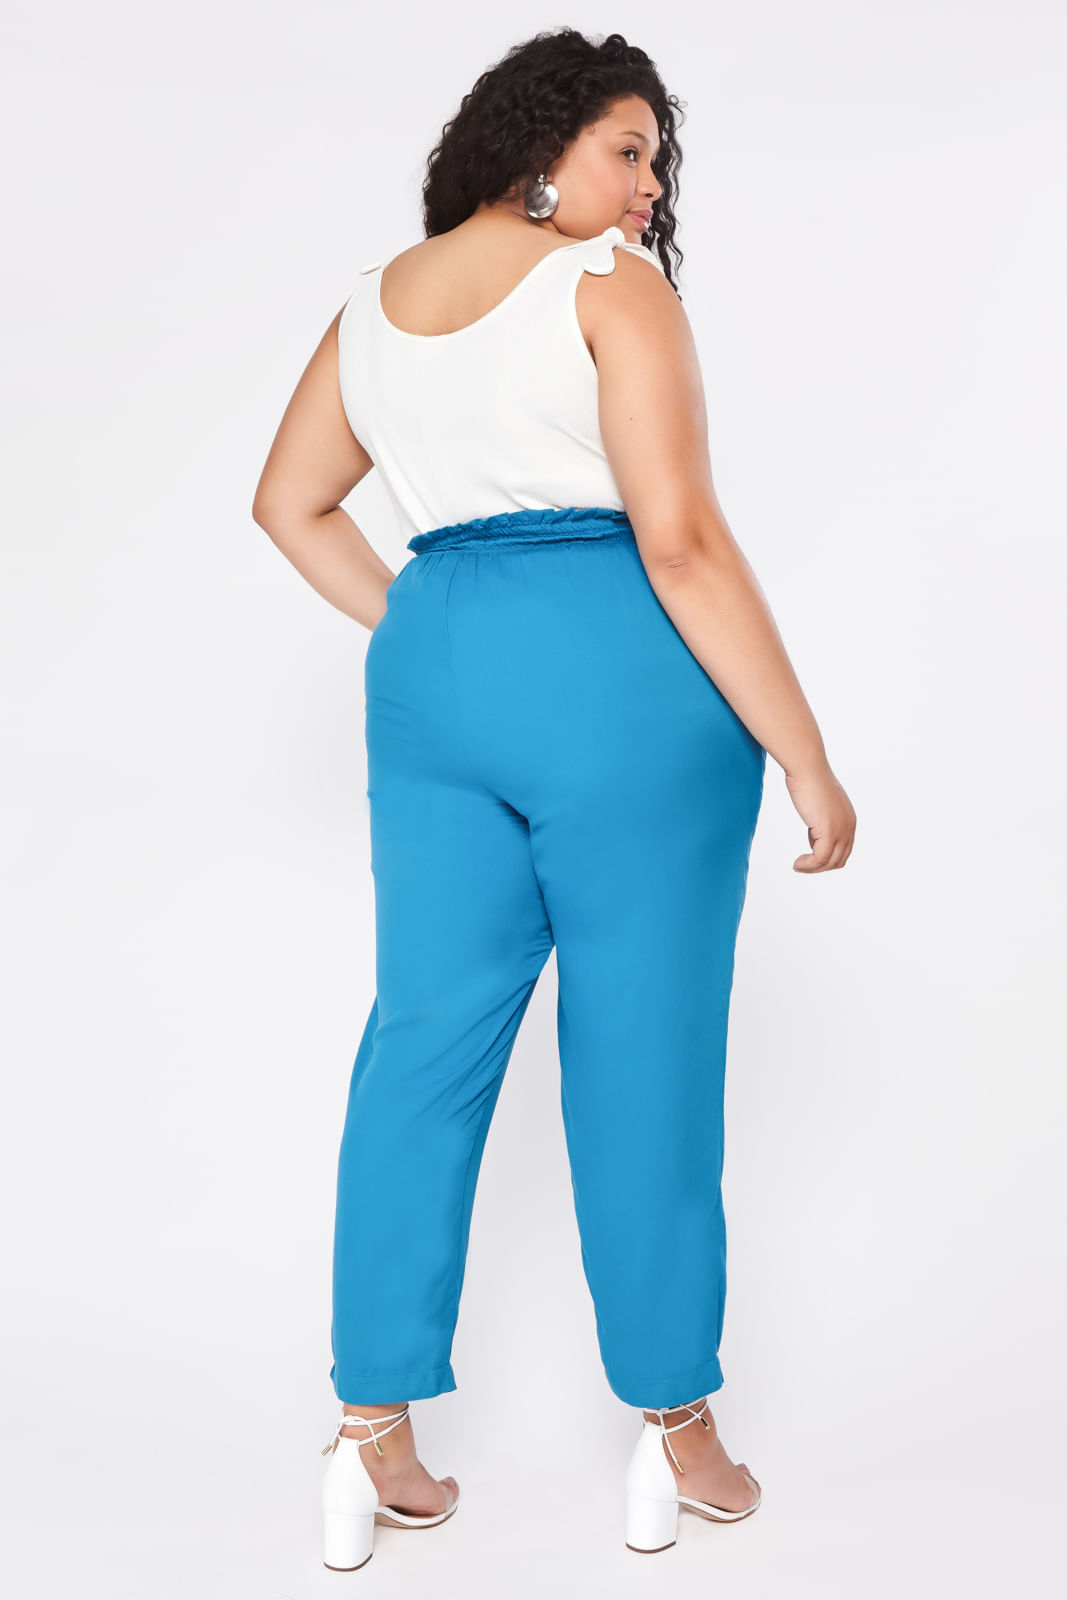 T087.4_Calca_Plus_Size_Viscose_Azul_4